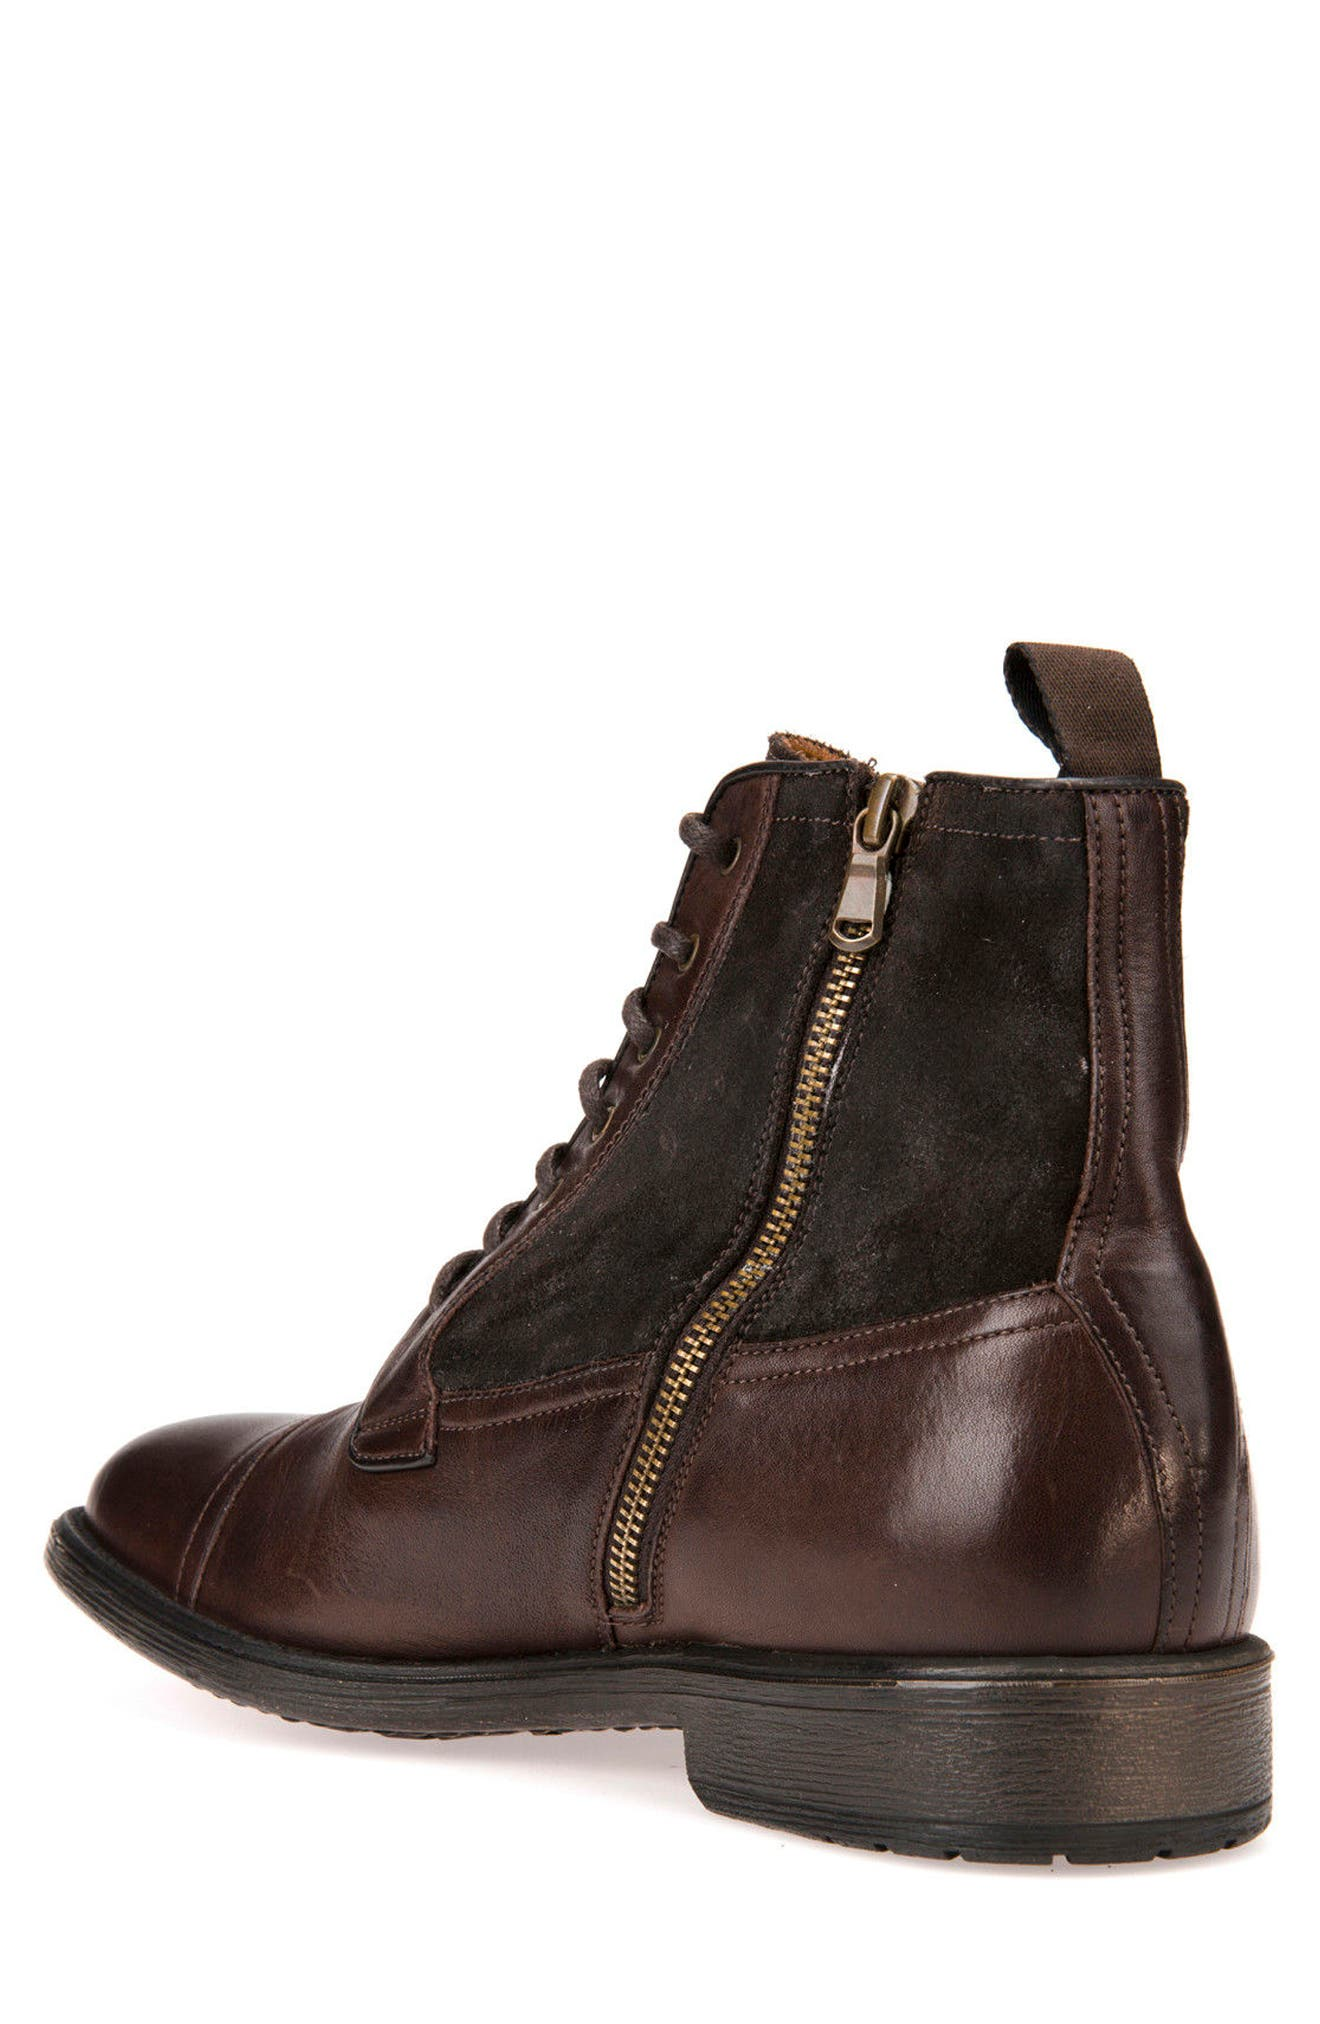 Alternate Image 2  - Geox Jaylon 12 Cap-Toe Boot (Men)